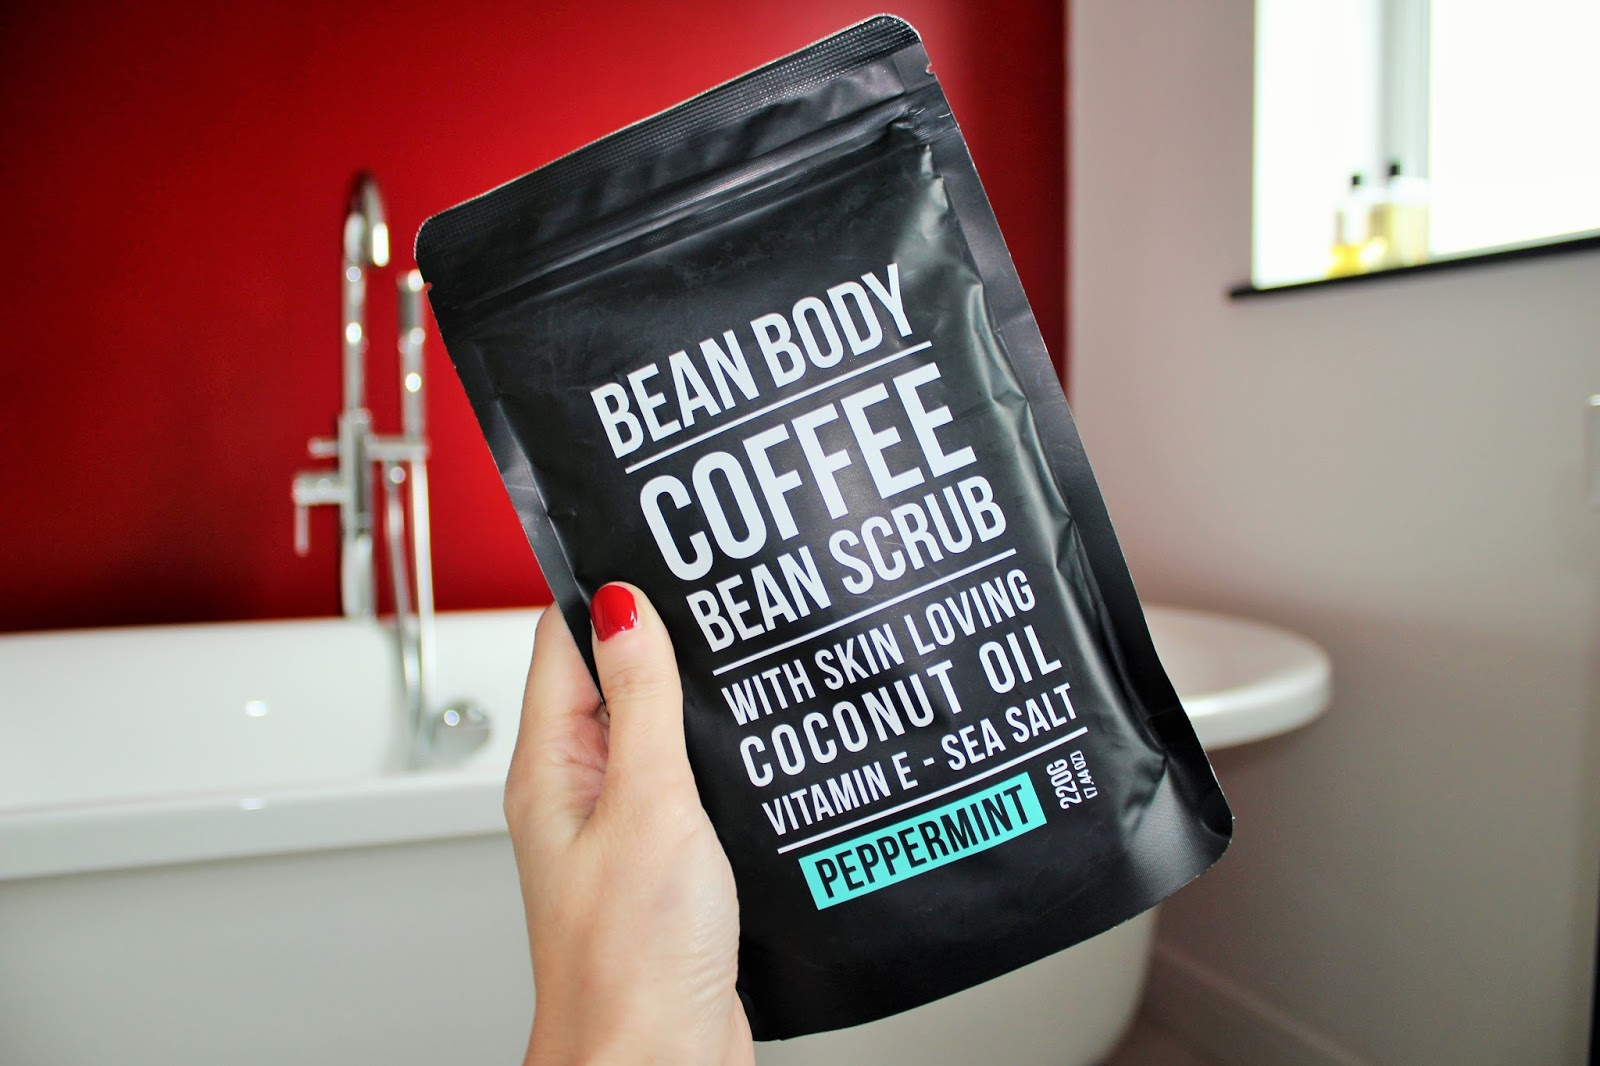 Bean Body Coffee Scrub Review 1